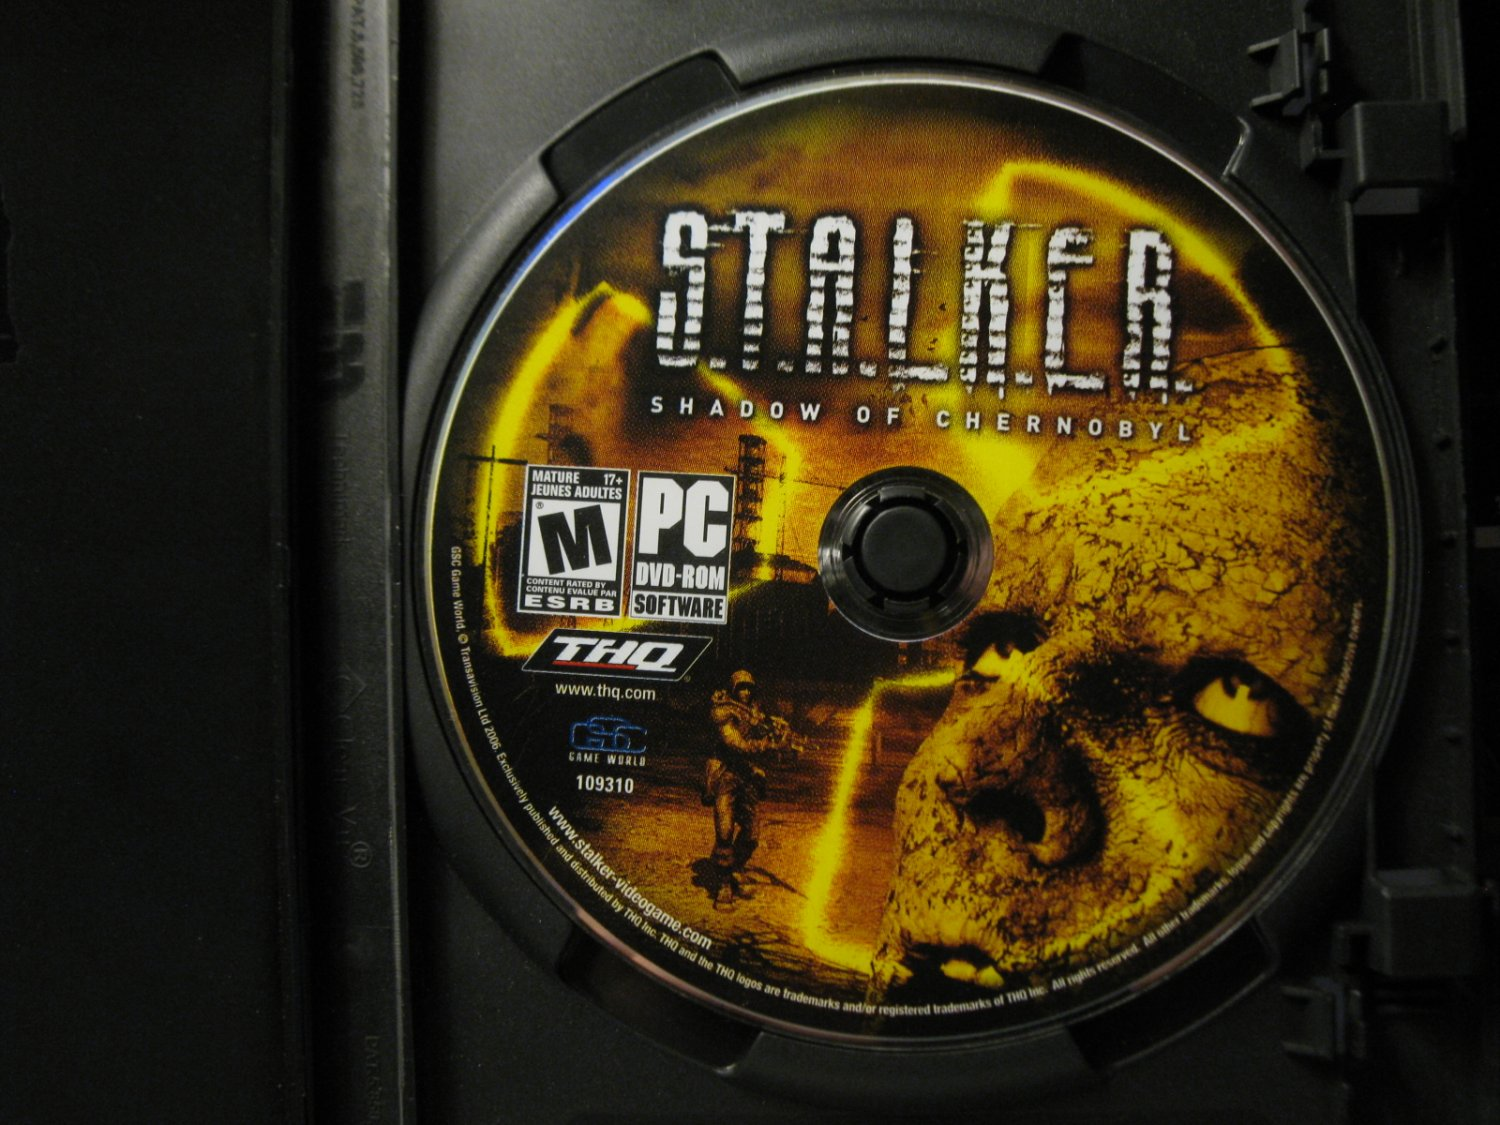 2006 PC Video Game: Stalker - Shadow of Chernobyl, disc only